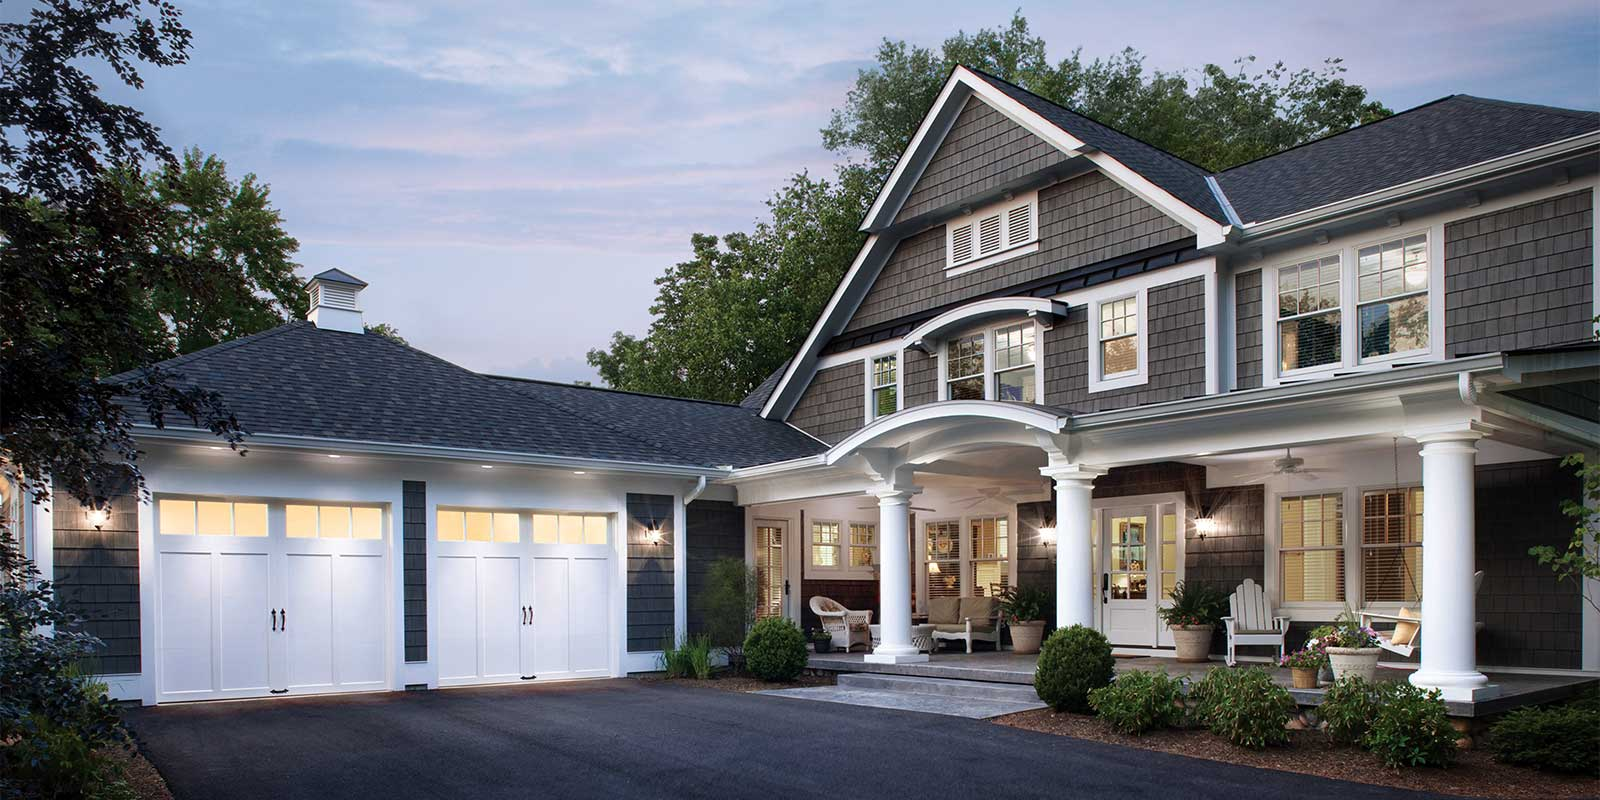 st-louis-residential-garage-home